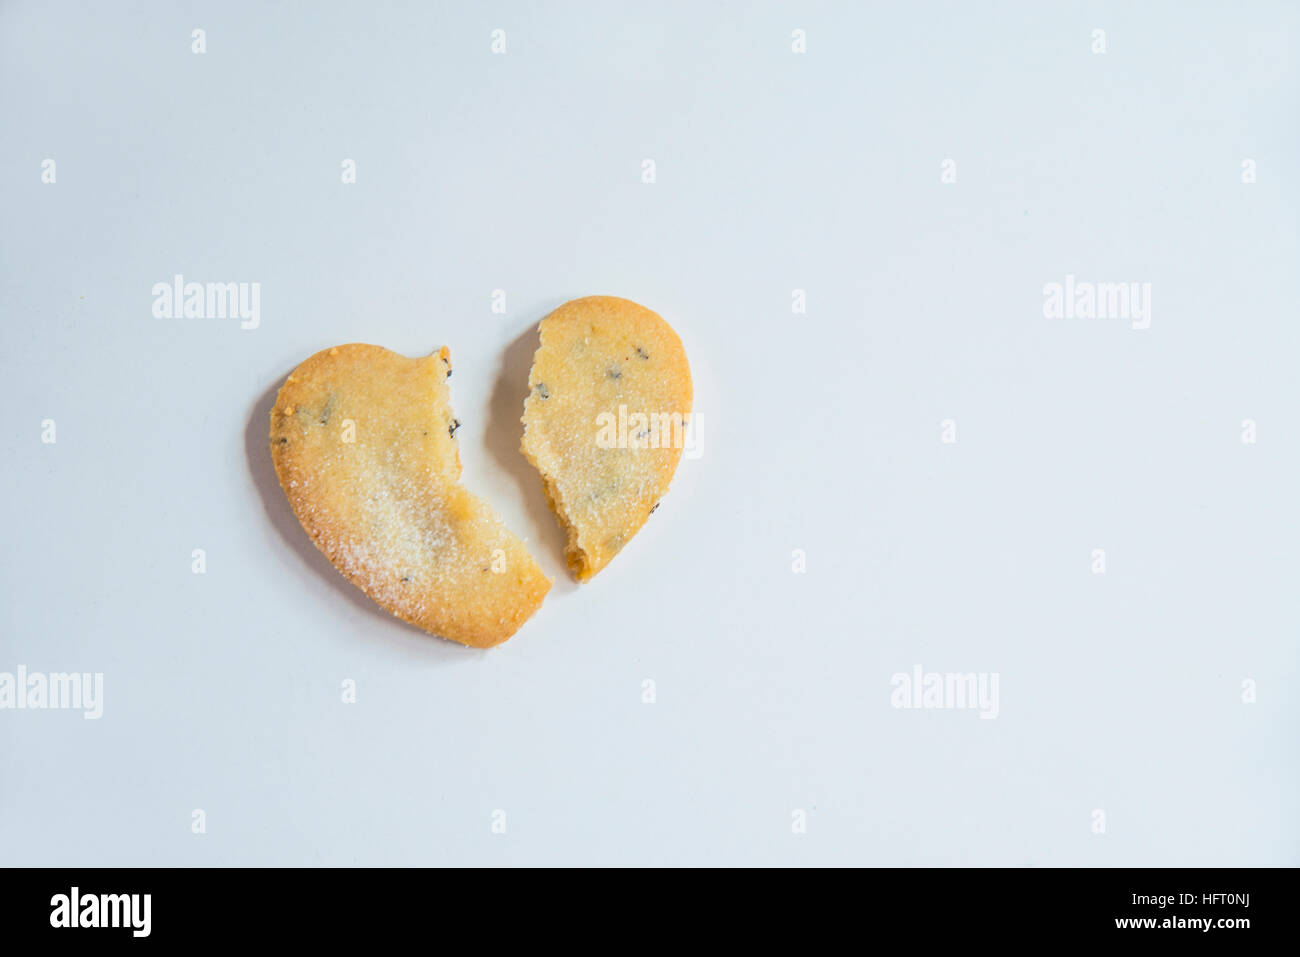 Heart-shaped biscuit, broken in two pieces. - Stock Image